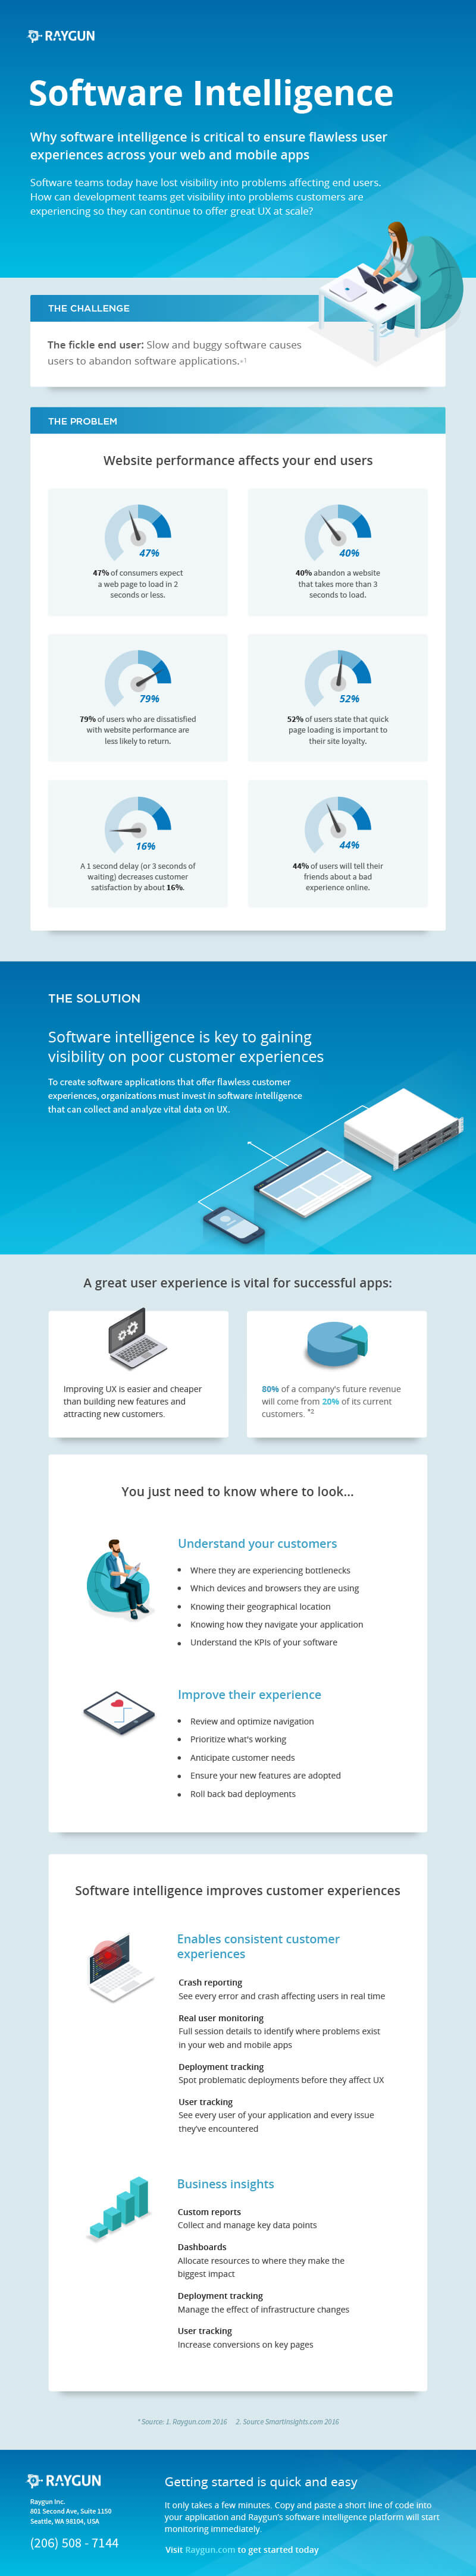 Software intelligence infographic for creating flawless user experiences